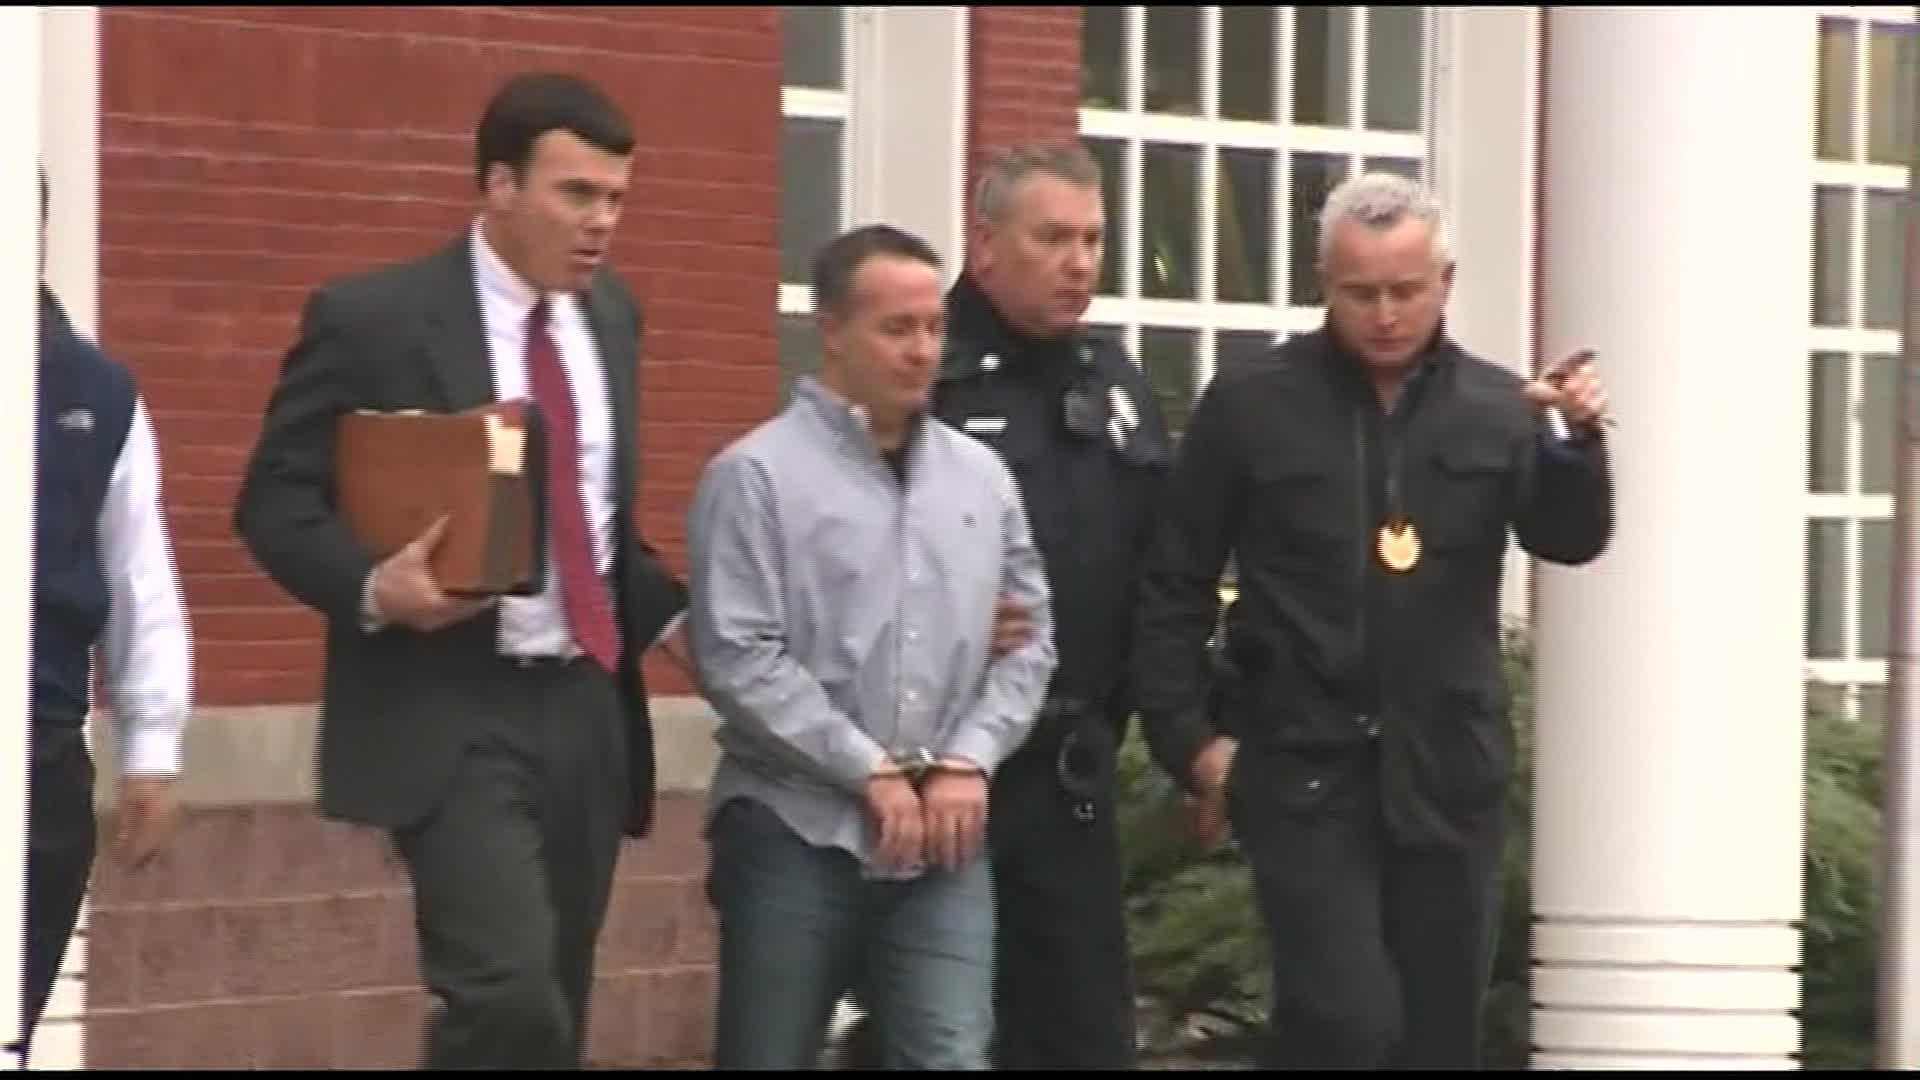 Co-founder and former NECC head pharmacist Barry Cadden is led out of Wrentham Police Department in handcuffs.